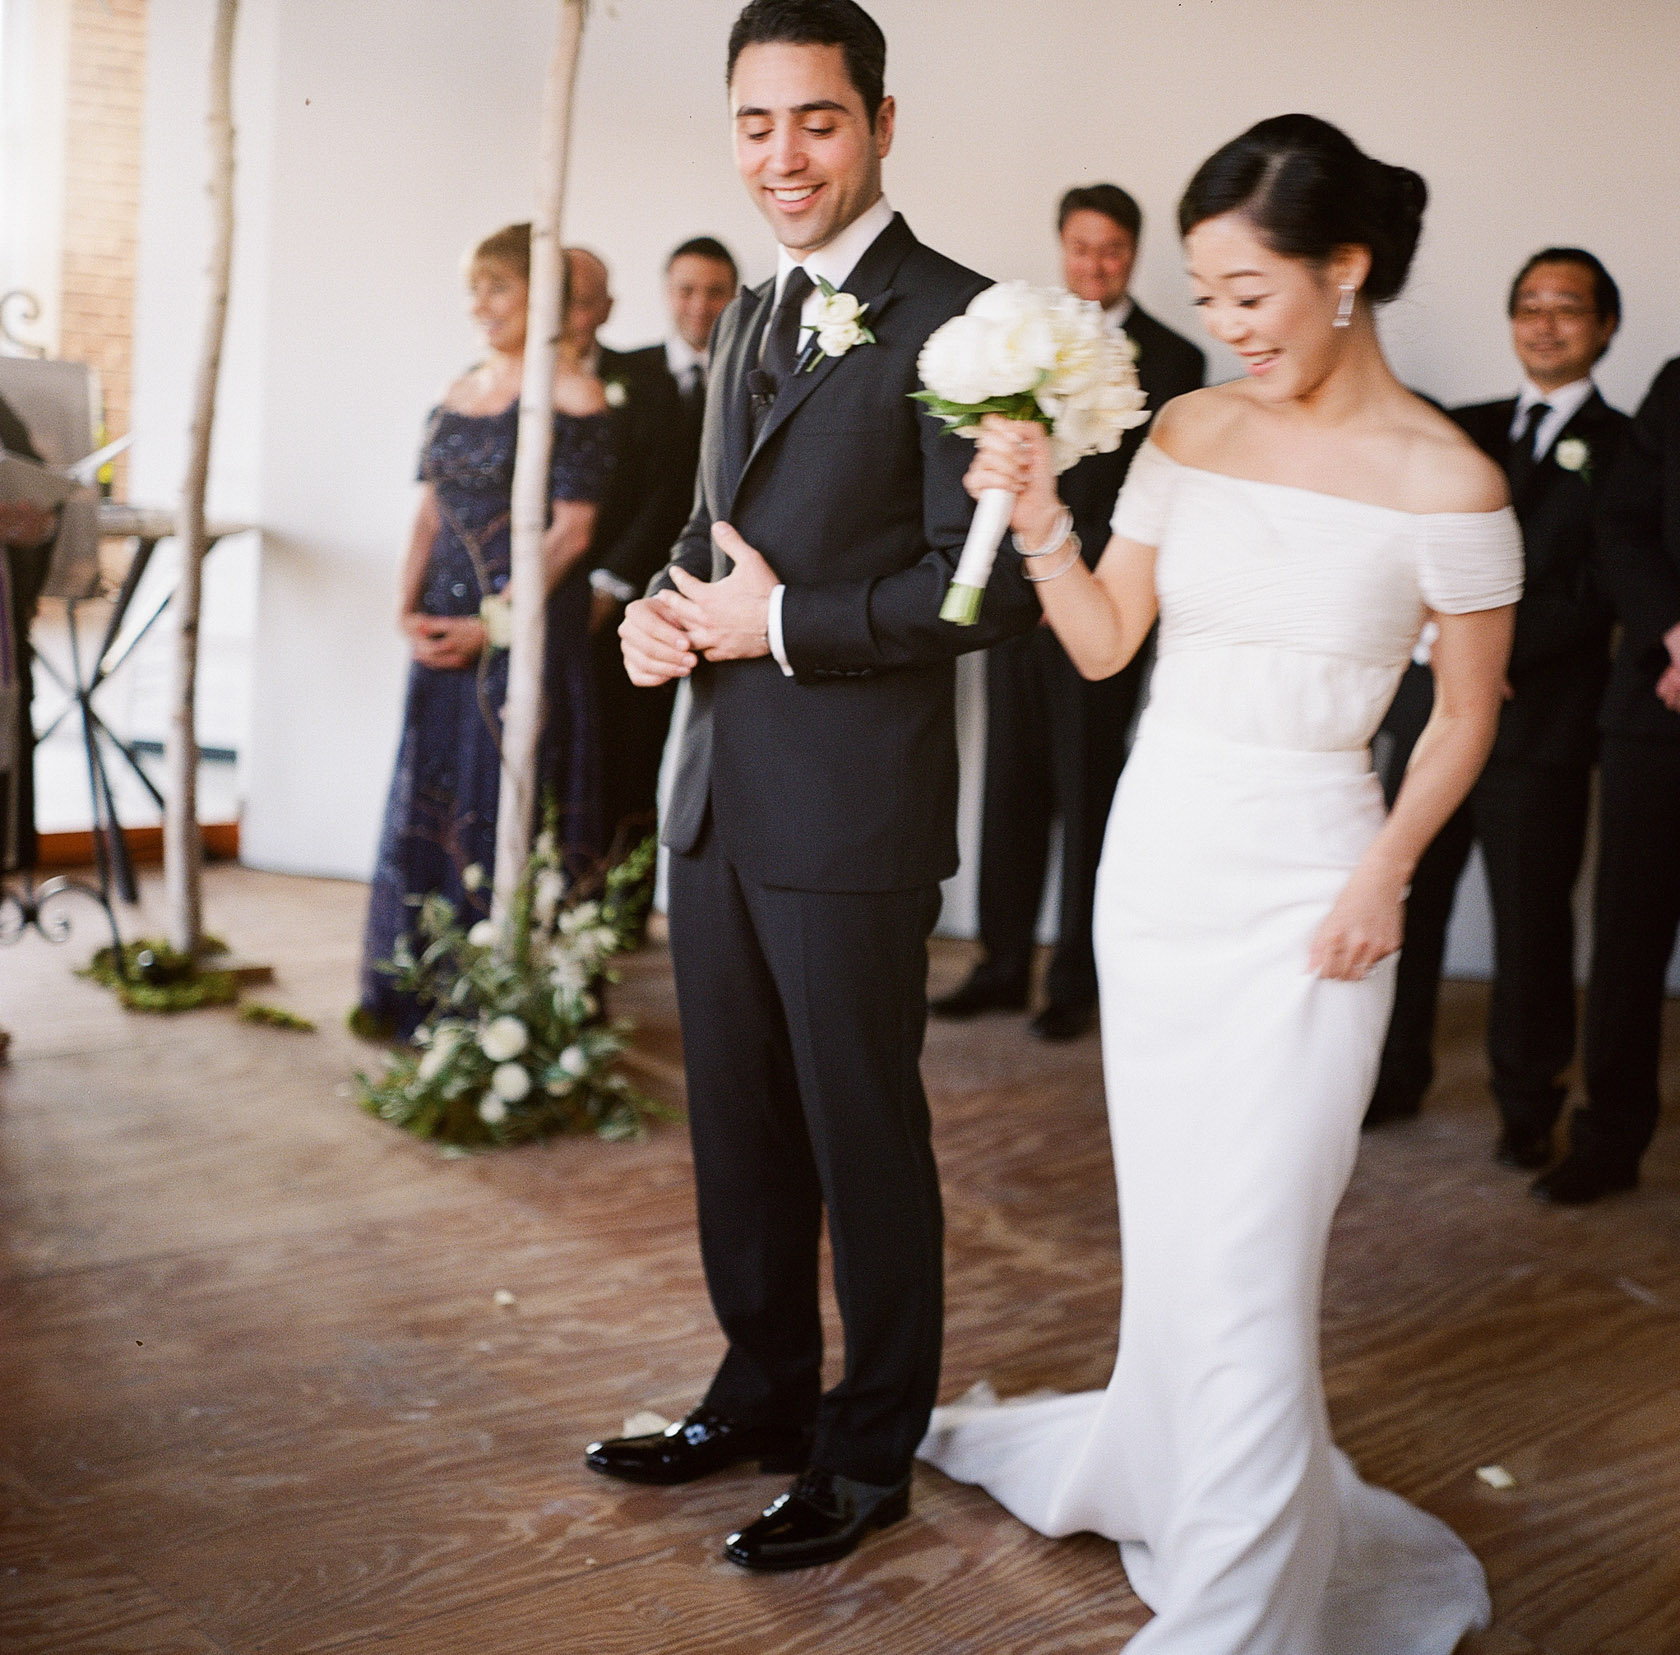 new orleans wedding ceremony on film at cac - 01